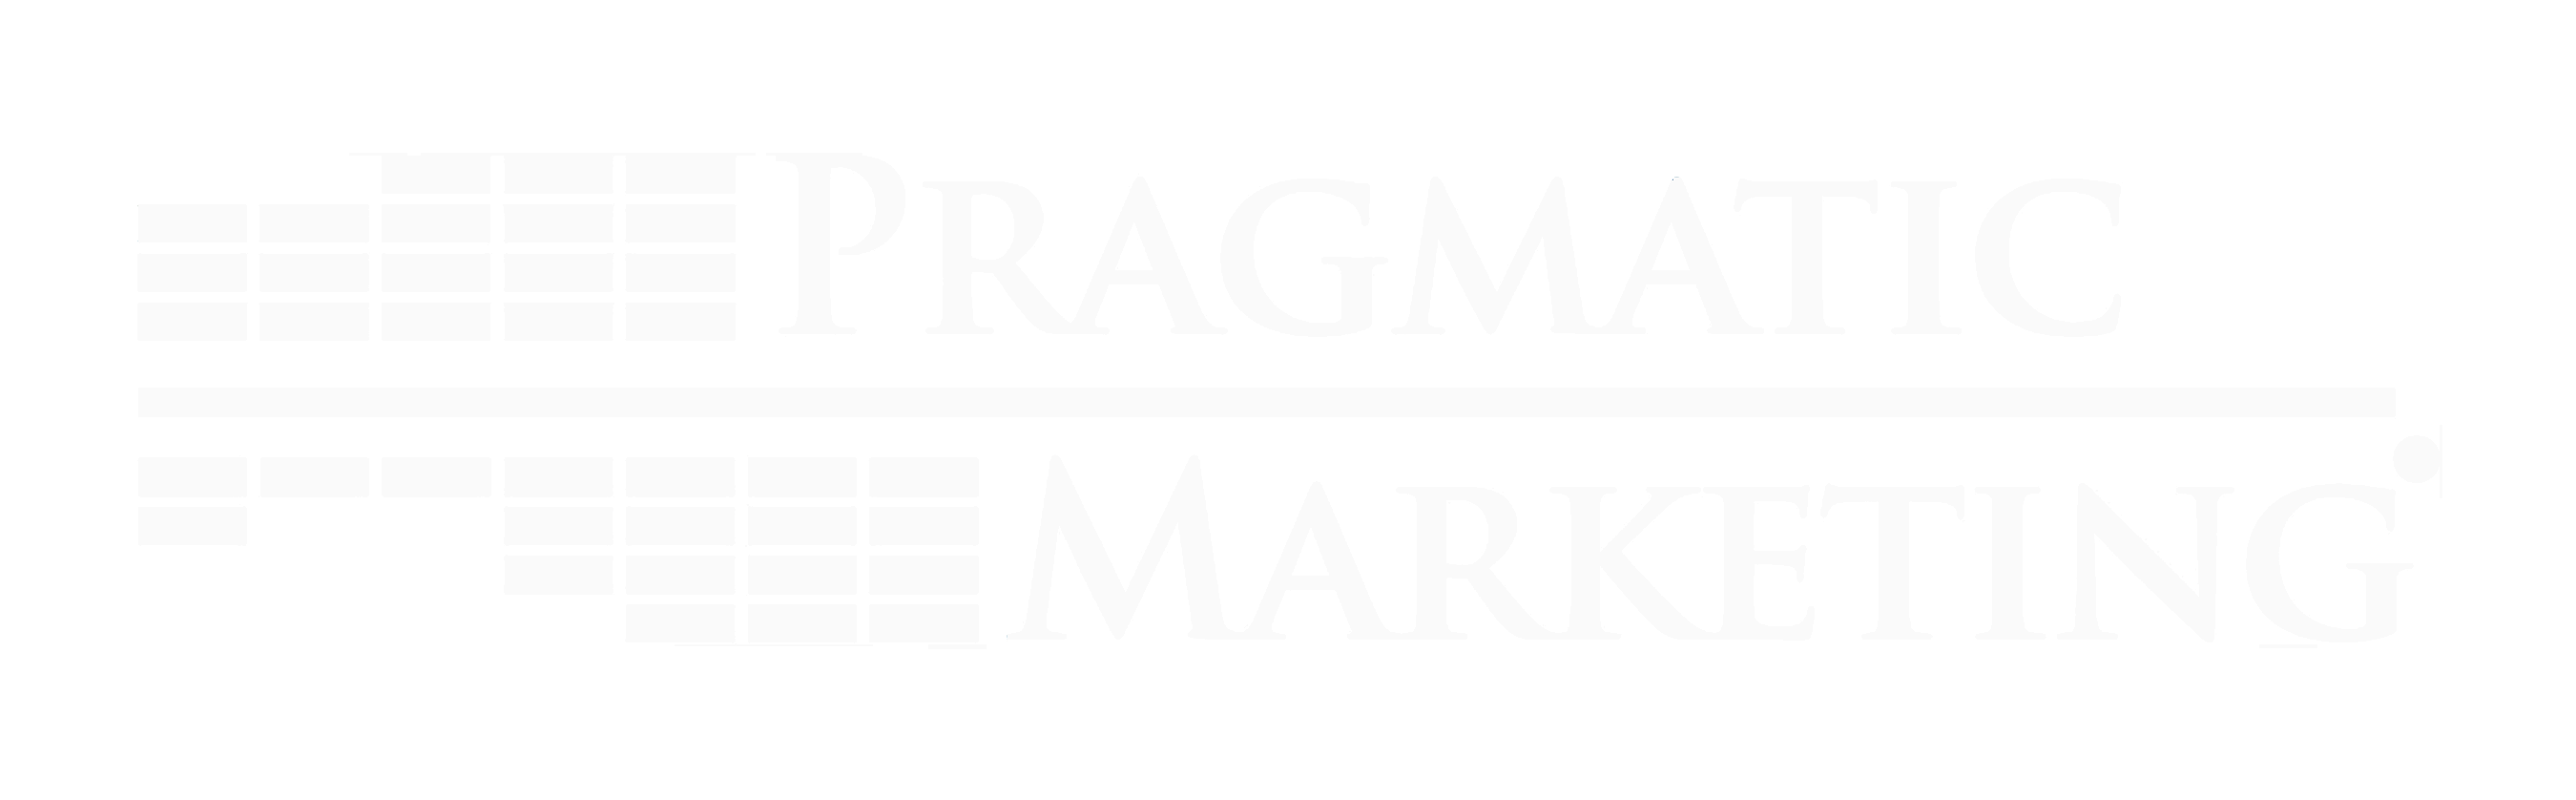 pragmaticmarketing-lightgray